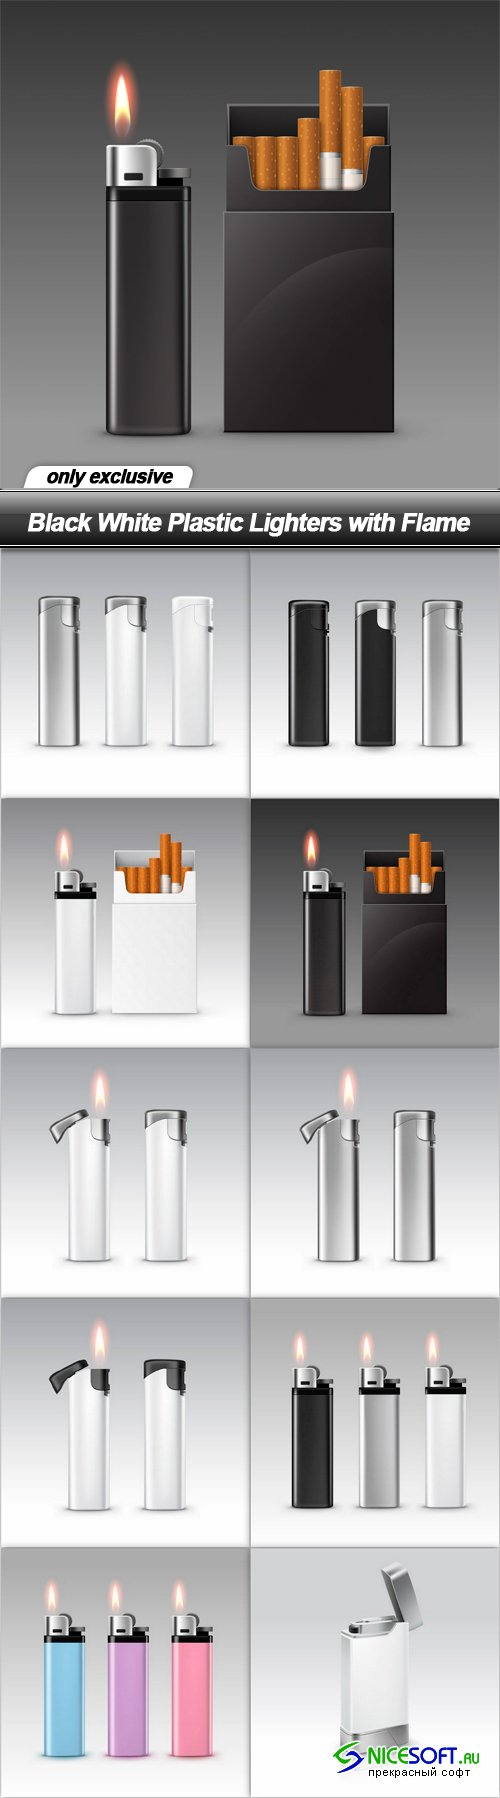 Black White Plastic Lighters with Flame